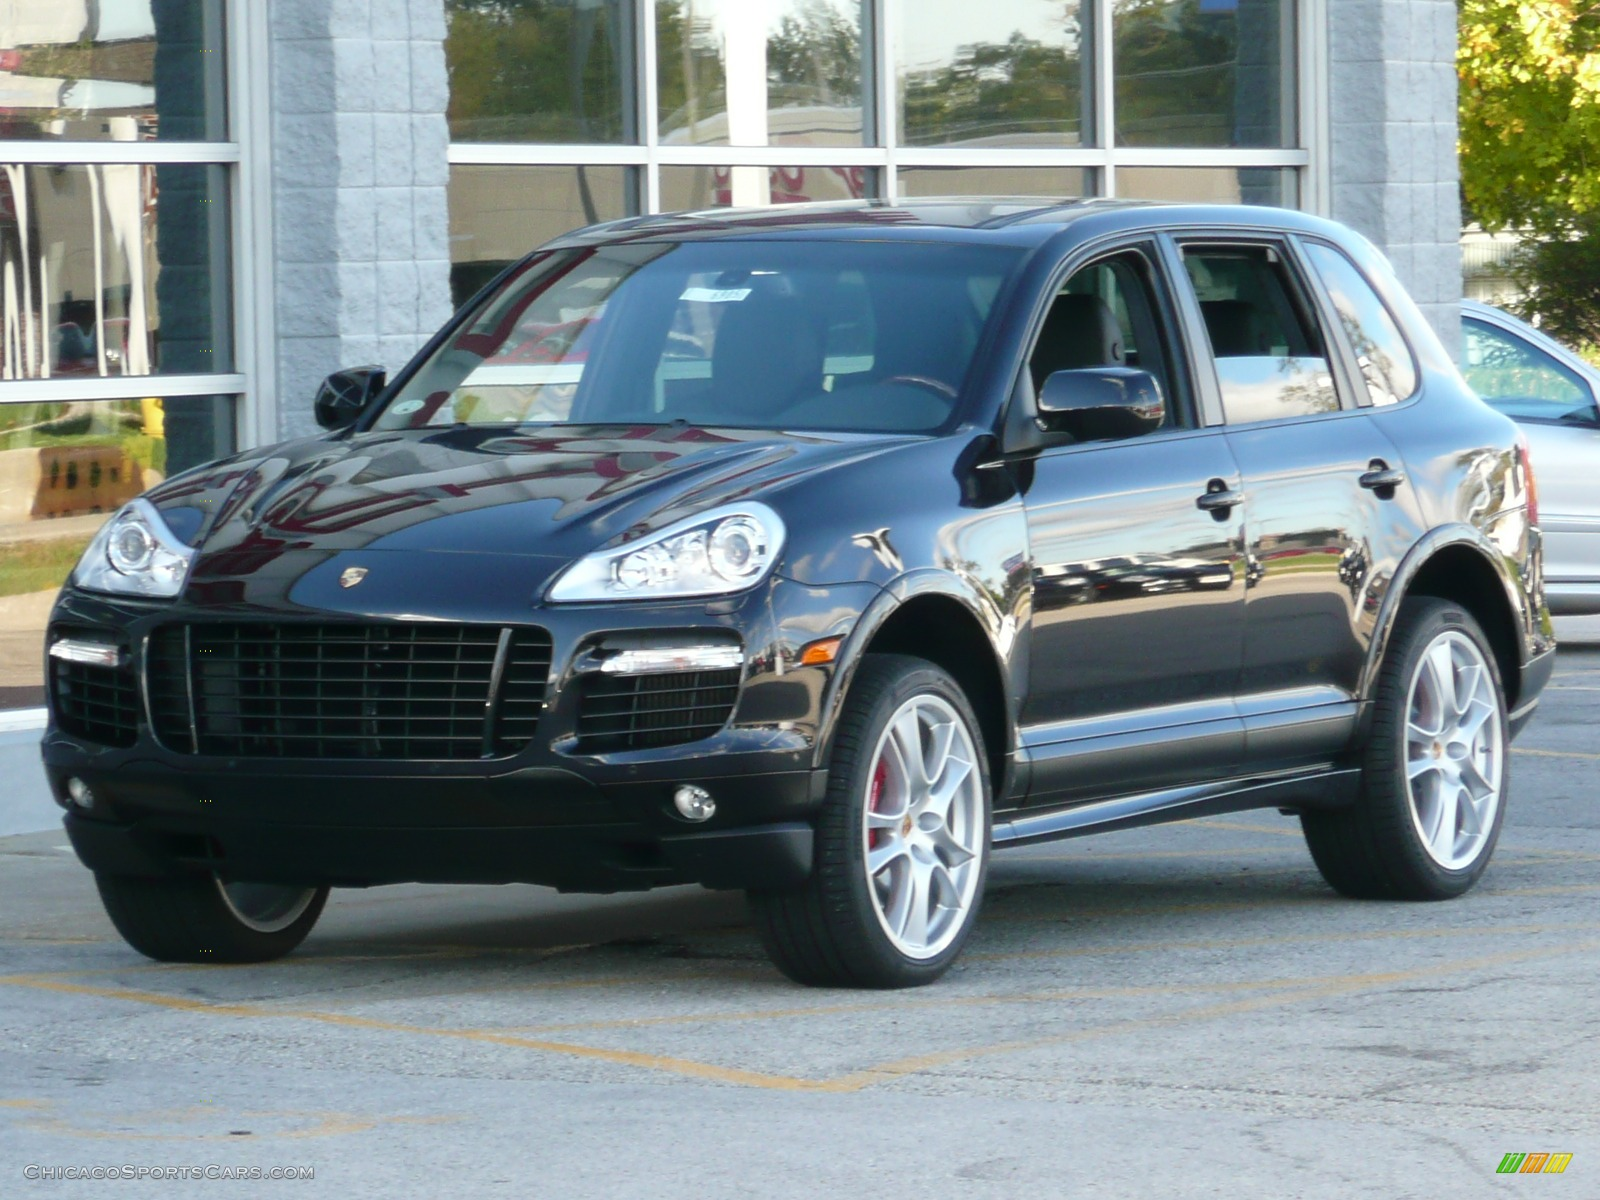 2008 porsche cayenne turbo in black a92316 cars for sale in illinois. Black Bedroom Furniture Sets. Home Design Ideas